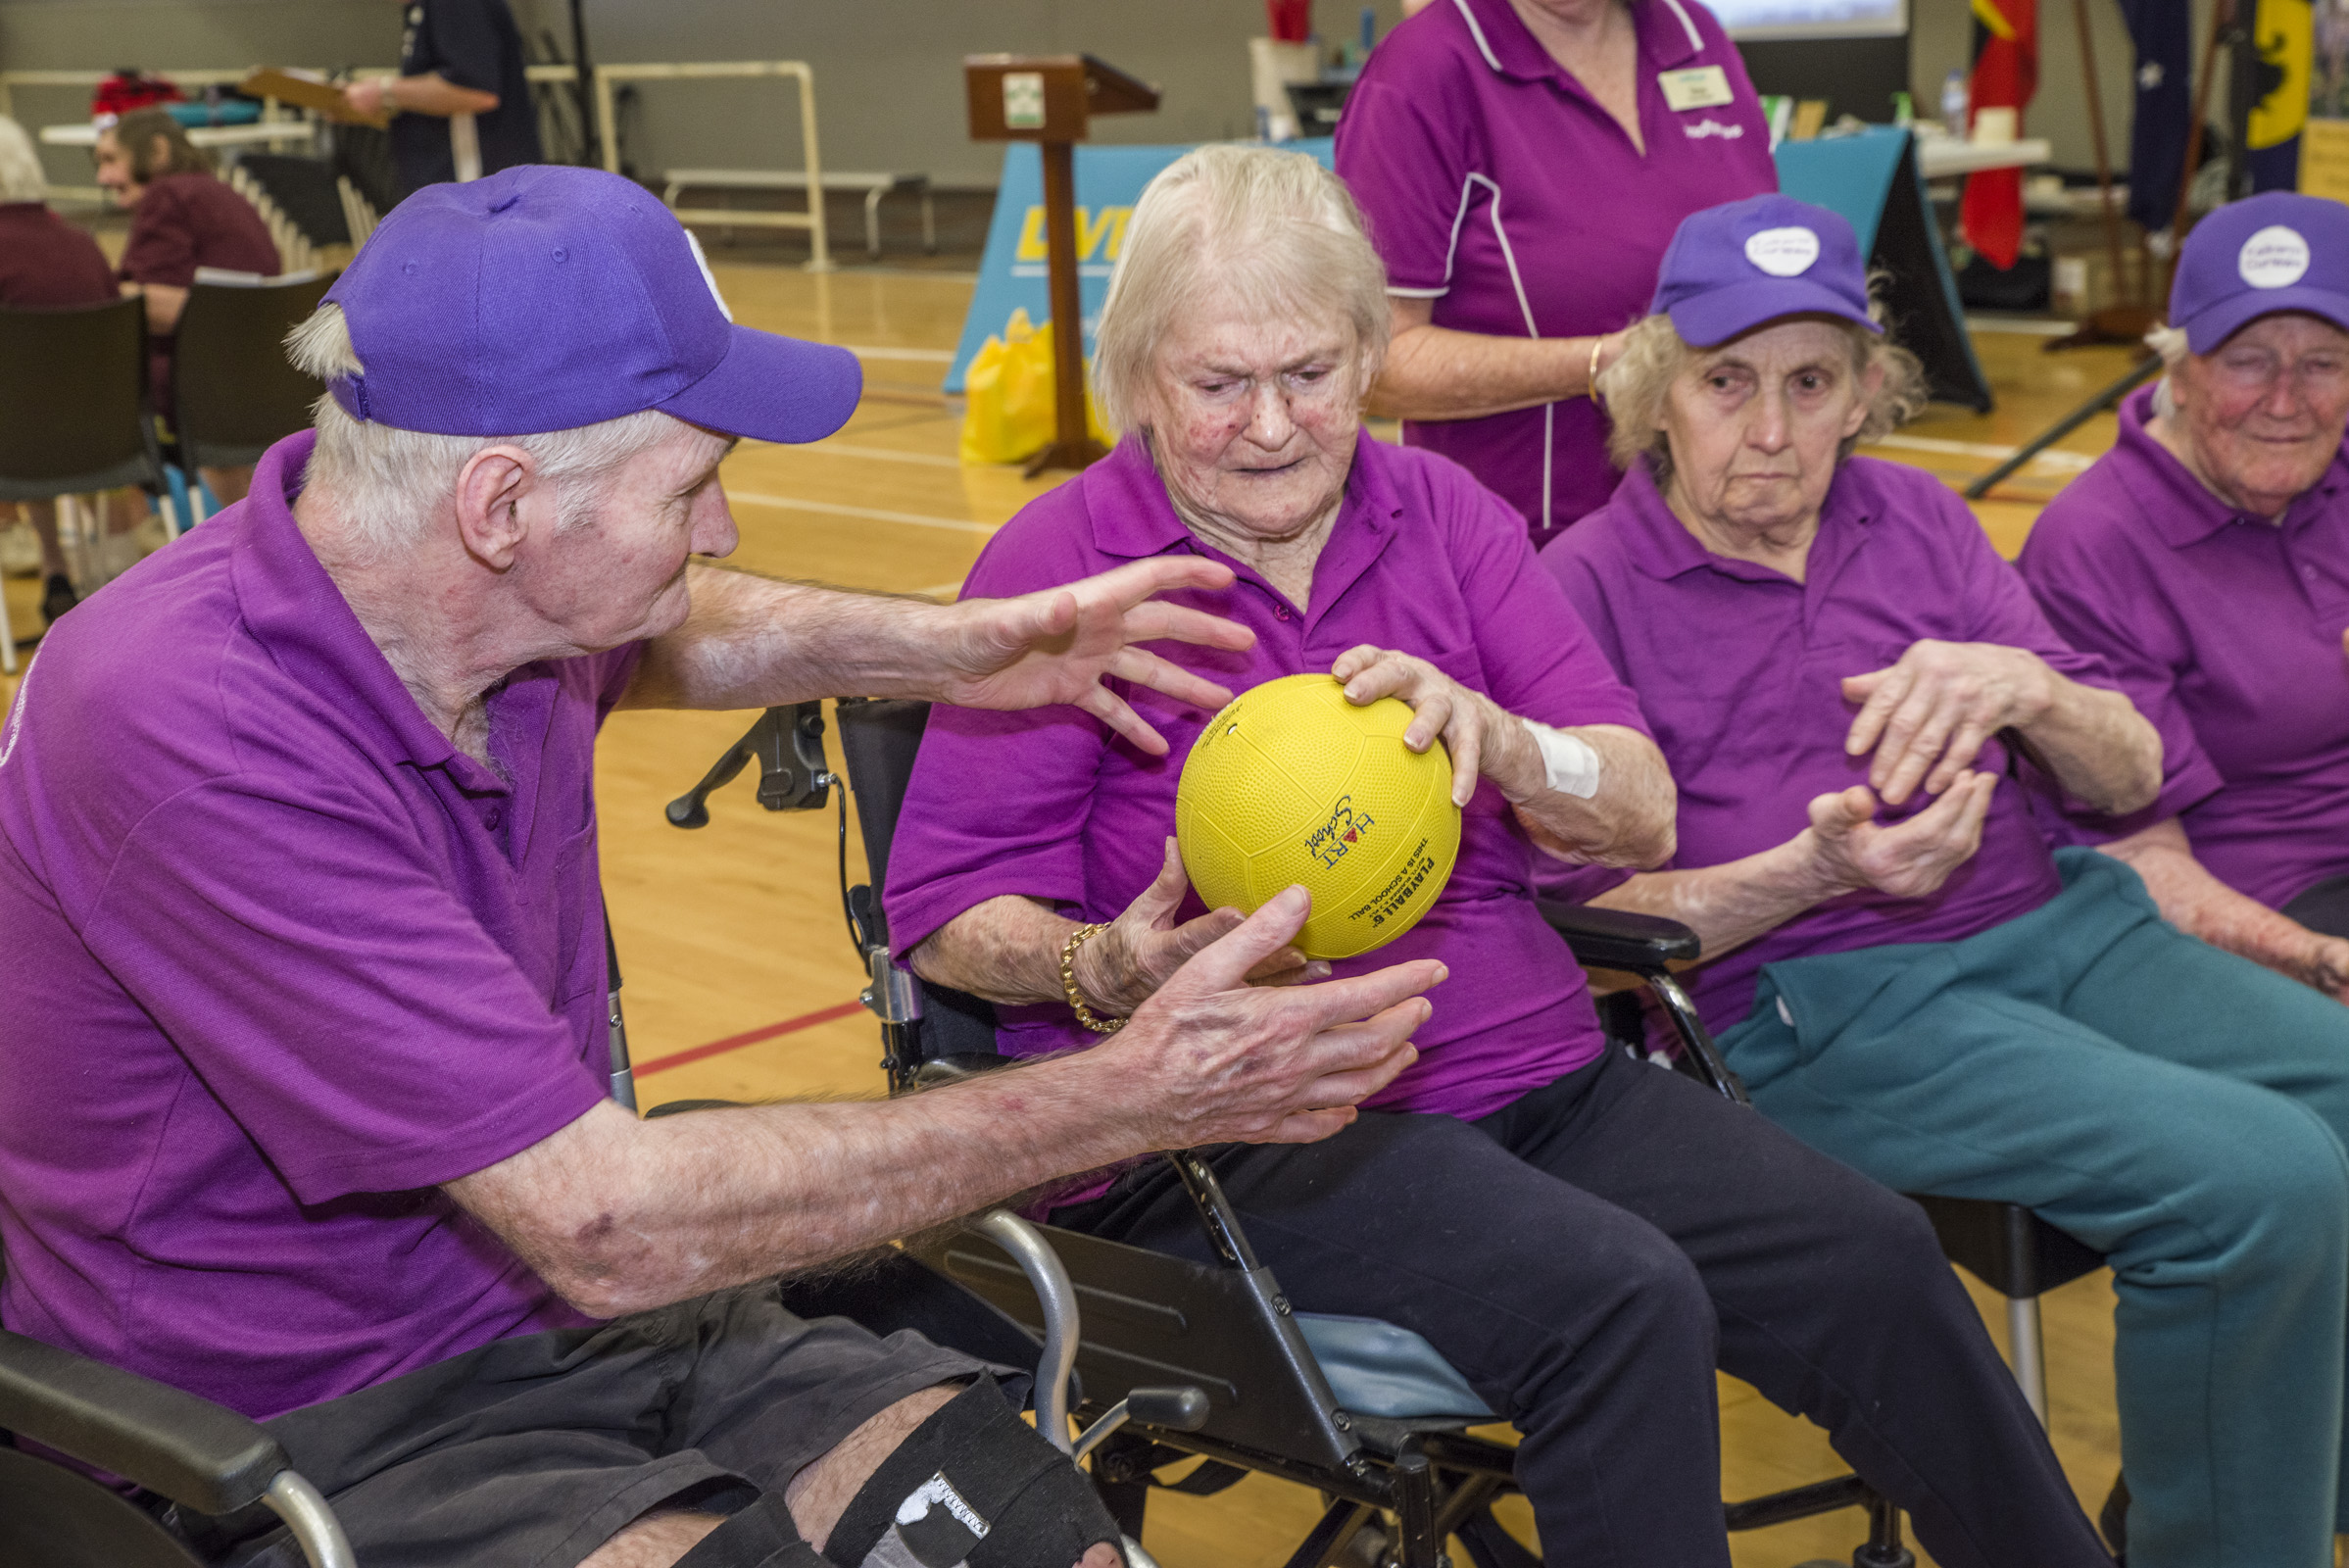 AVON LiveLighter Aged Care Games Rescheduled